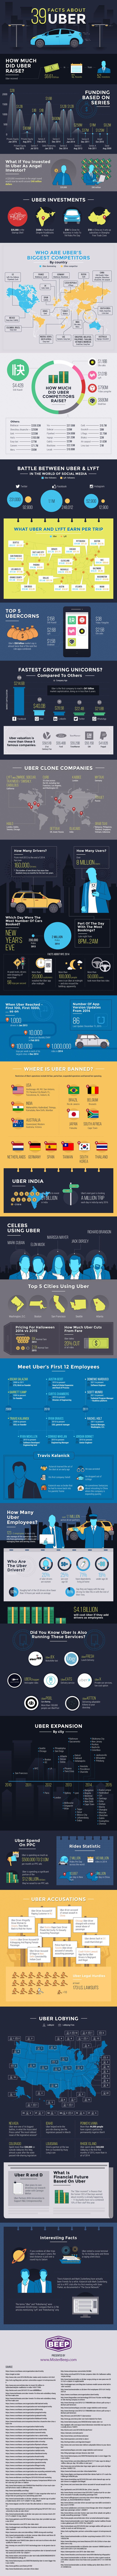 When it comes to getting a ride, Uber has quickly become the go-to service for many people. It offers incredible convenience and lots of options in terms of the types of vehicles offered. Those are some things you probably already knew about Uber. Check out the infographic below for 39 things you probably didn't! Via…